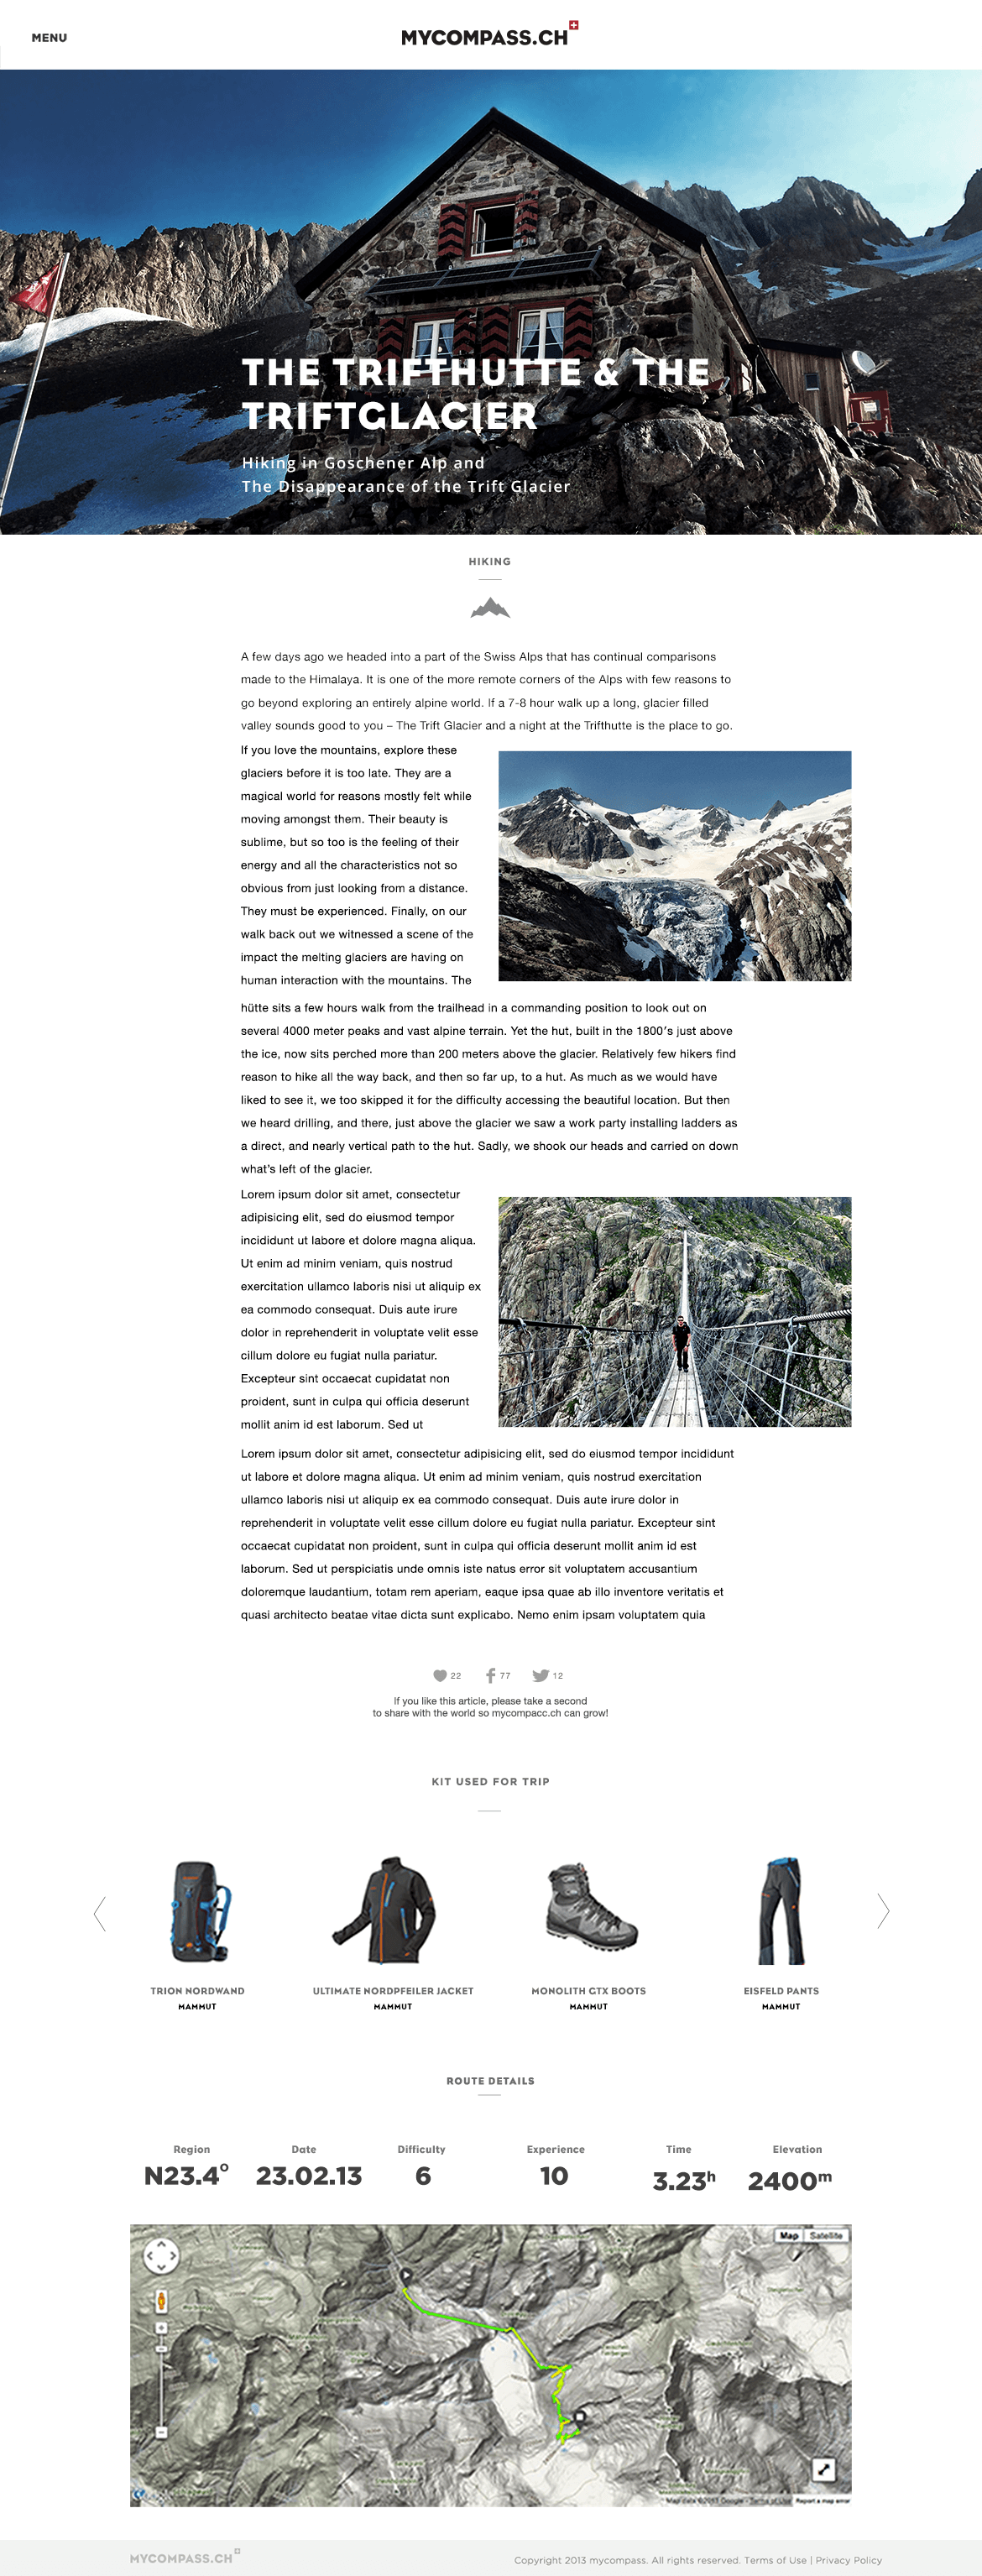 myCompass Outdoor & Adventure blog - Web Design & Brand Identity - Blog post